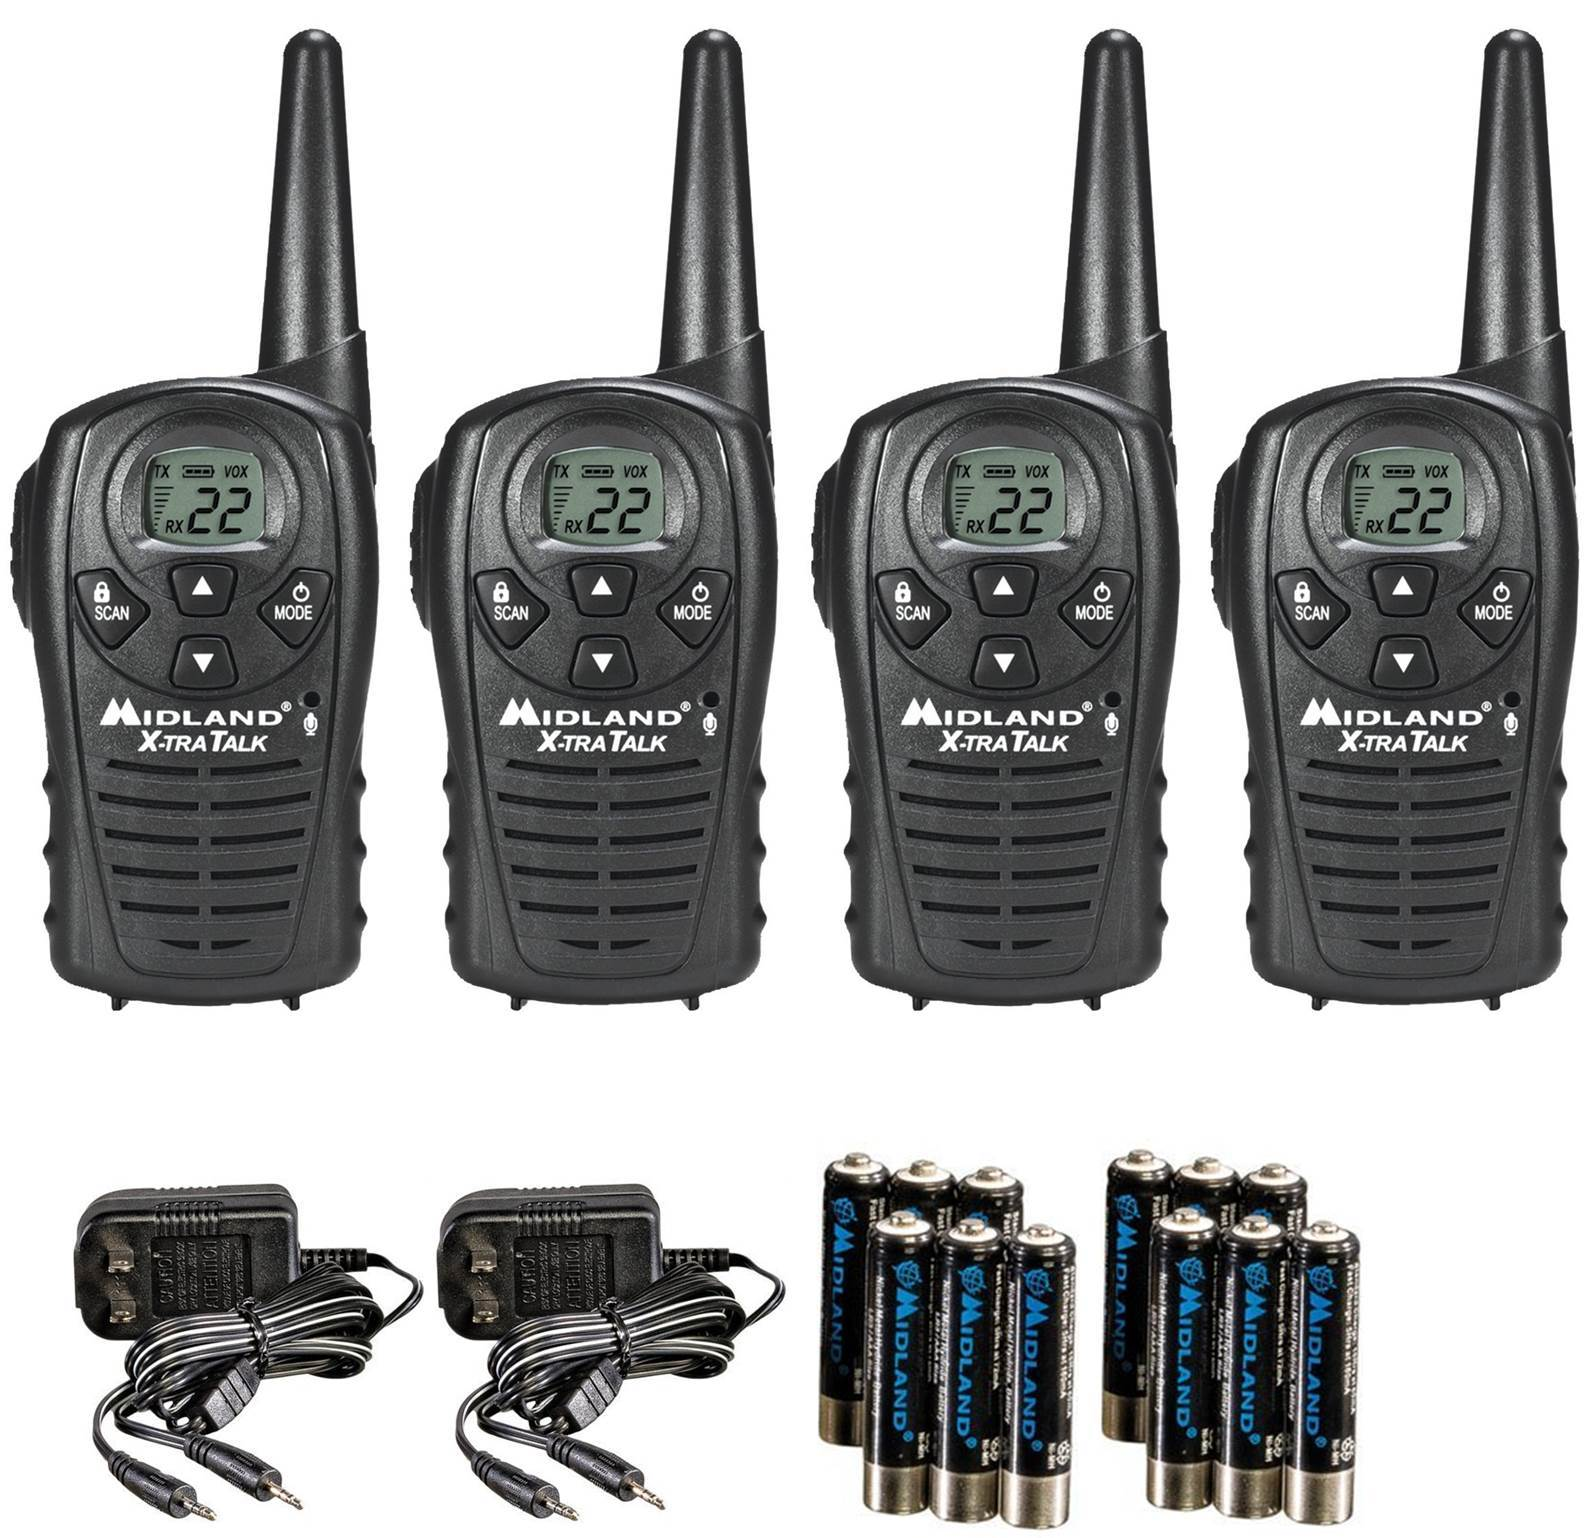 Midland Walkie Talkie >> Midland Walkie Talkie 18 Listings